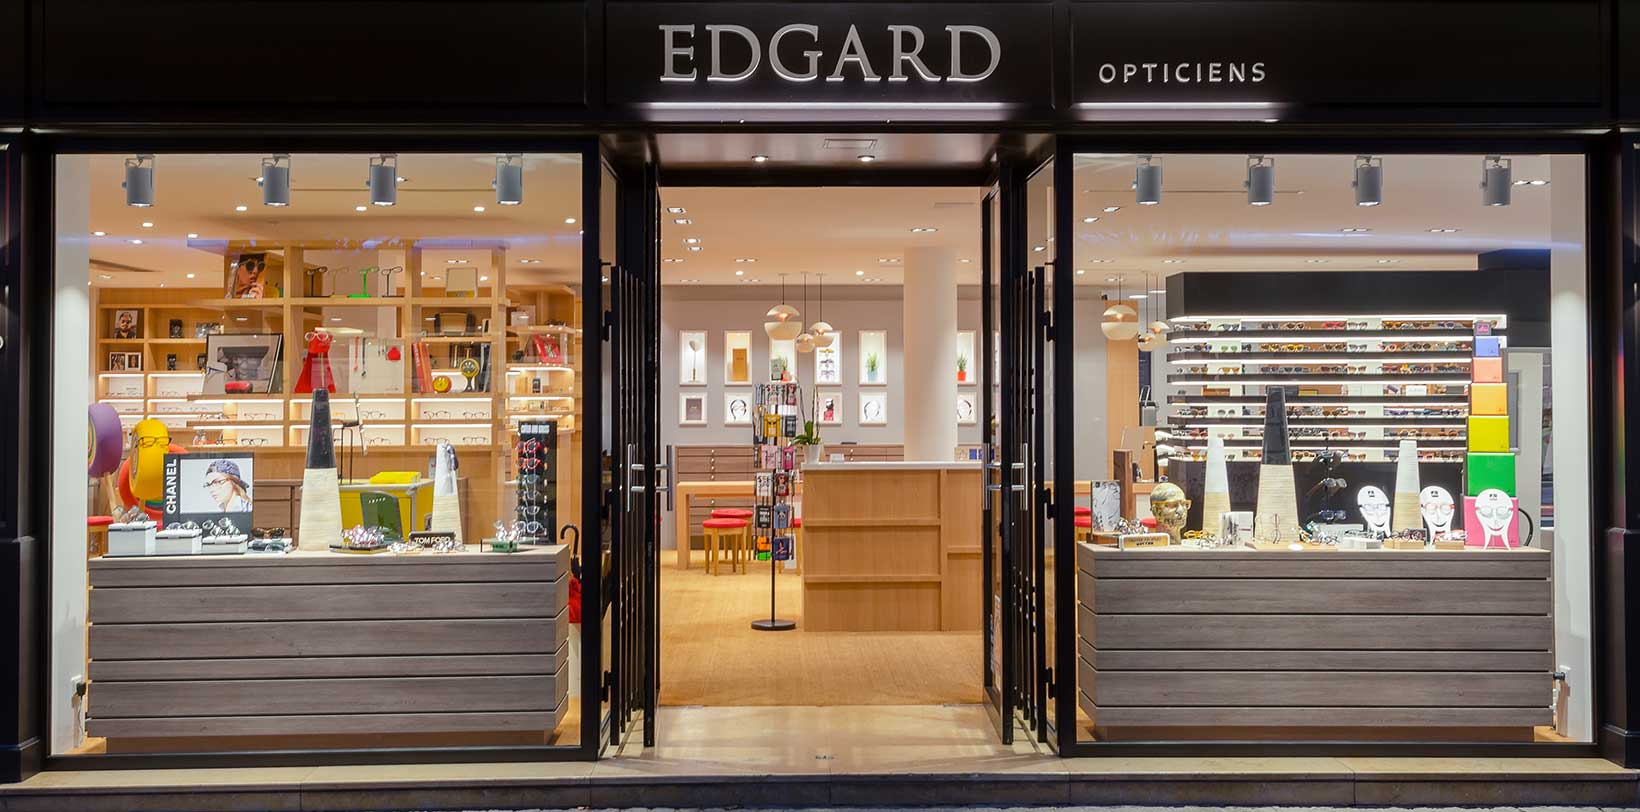 Edgard Opticiens devanture